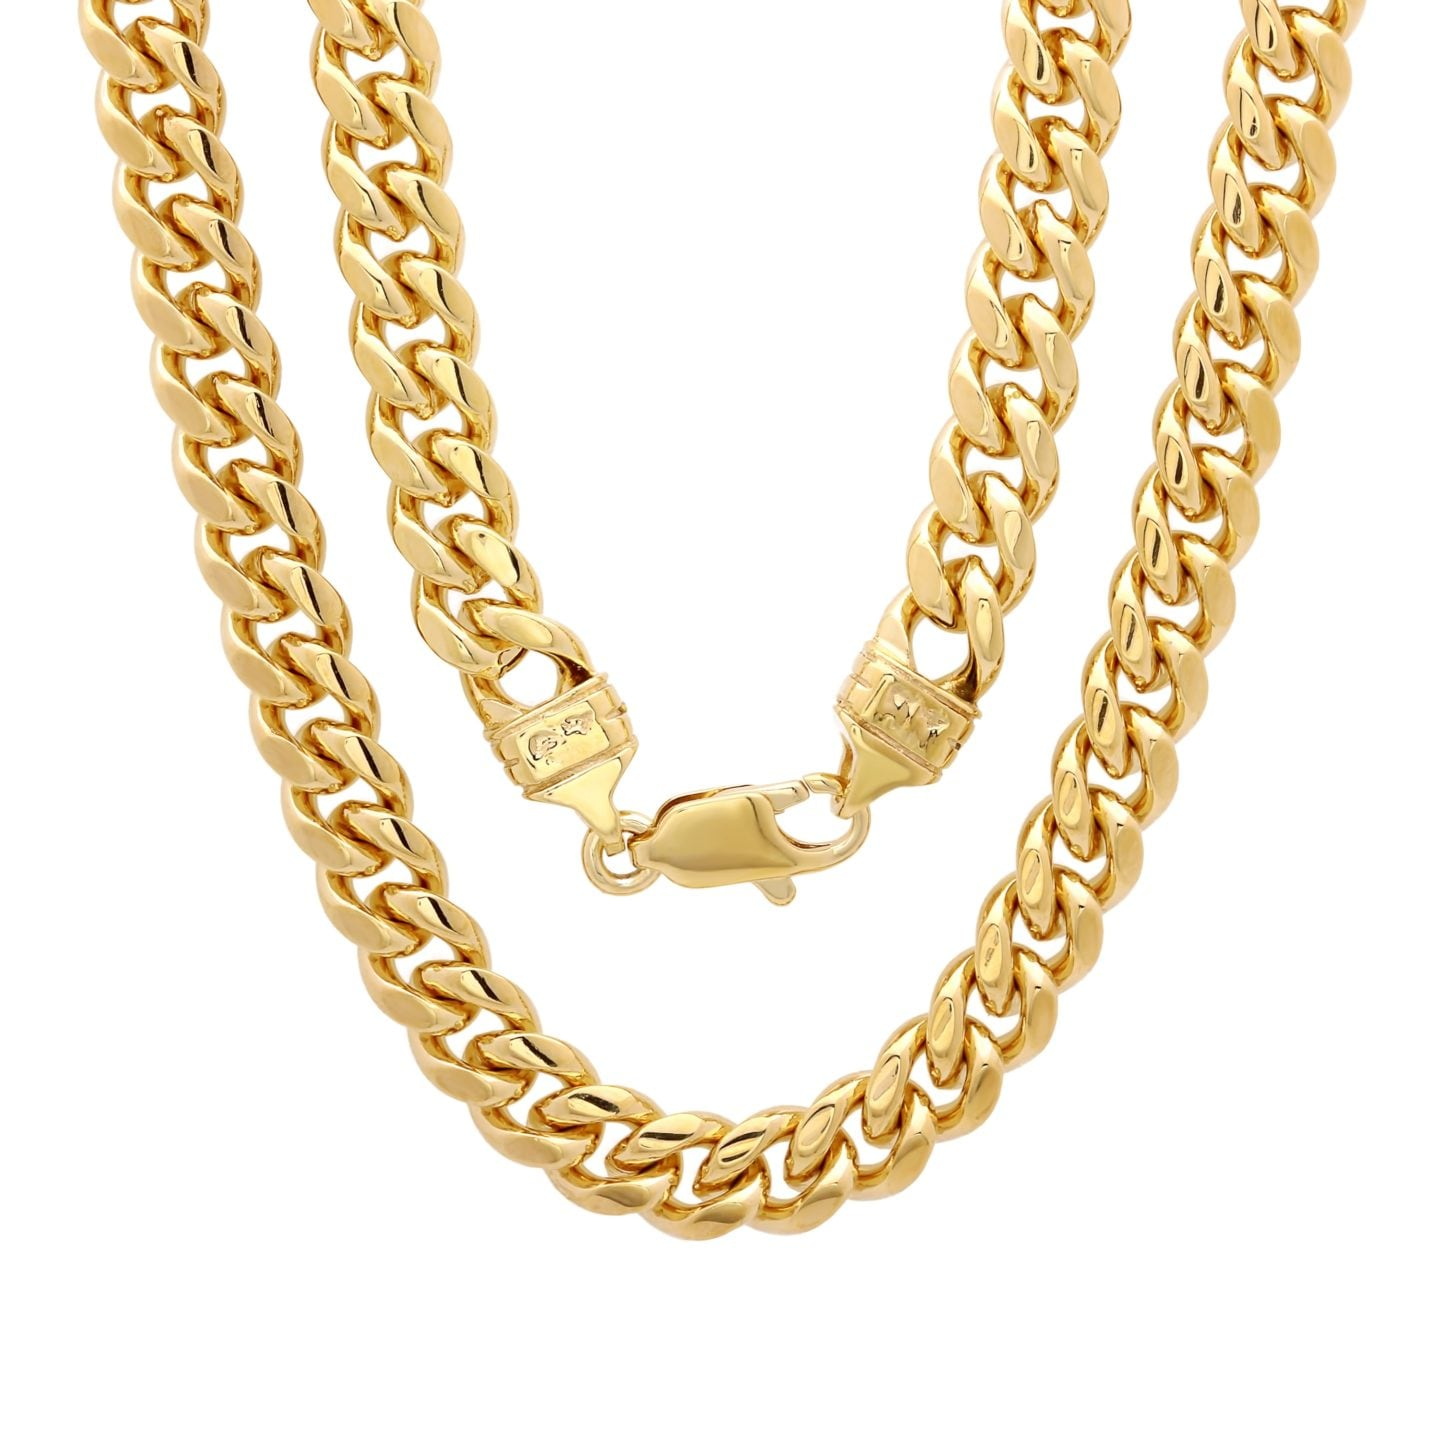 Long Gold Chain Necklace Jewelry Ideas for Men for Christmas